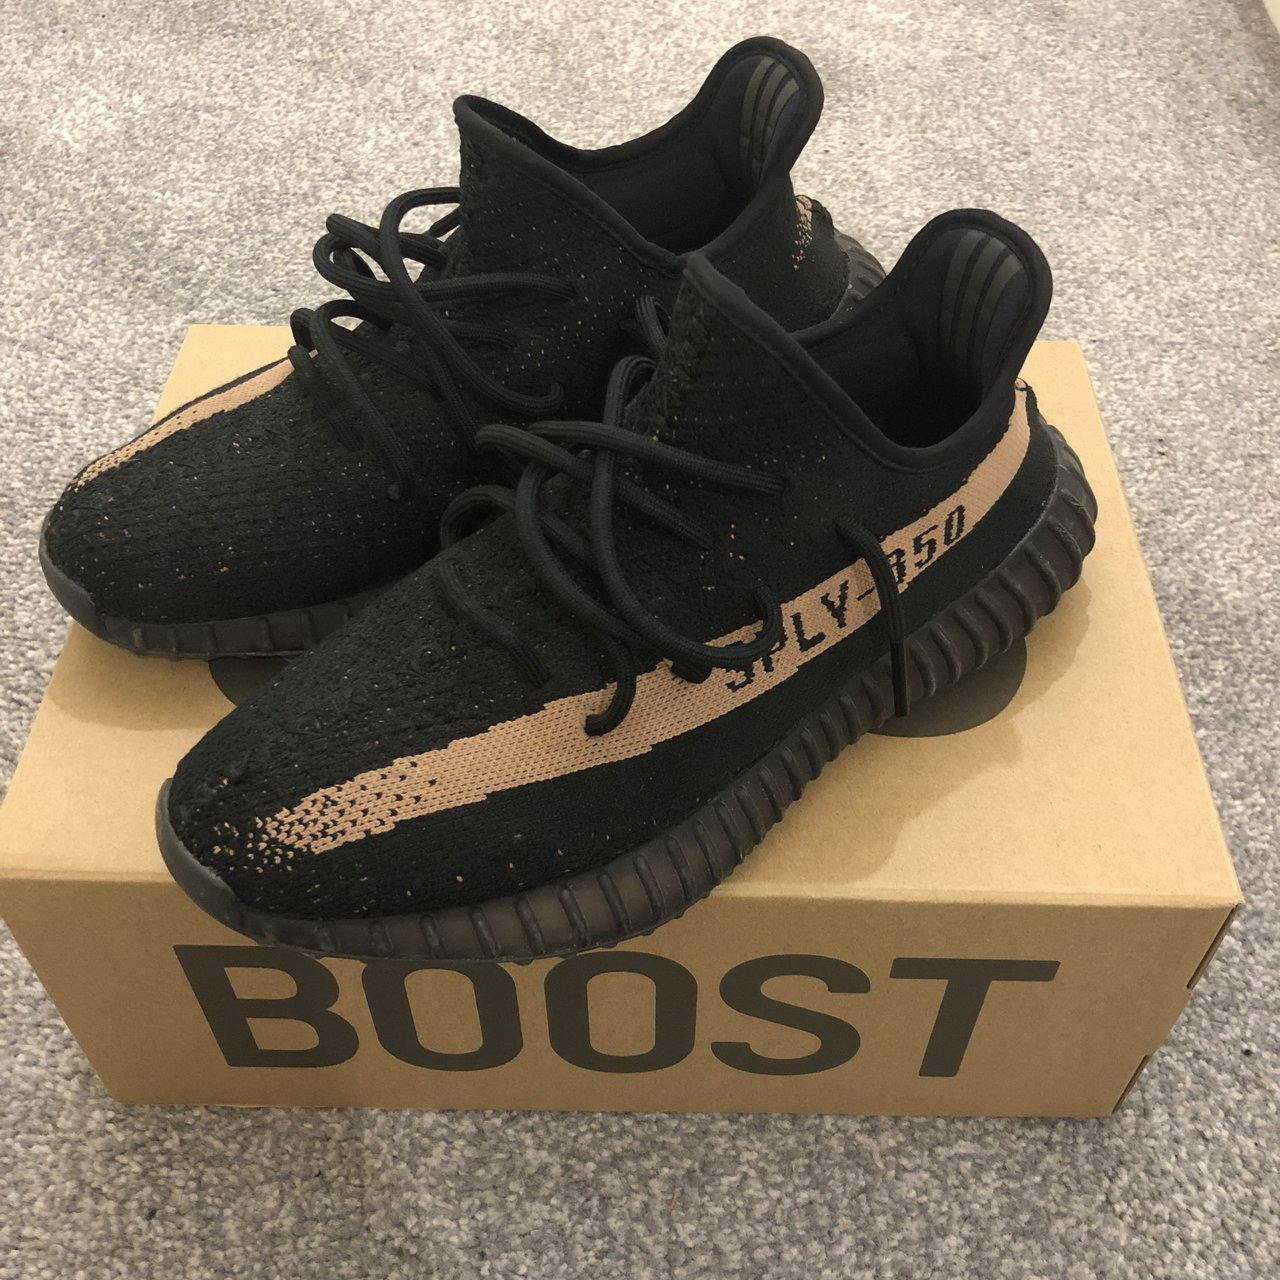 4697ad7fa Adidas Yeezy Boost 350 V2 Copper Used 8 10 condition as you - Depop